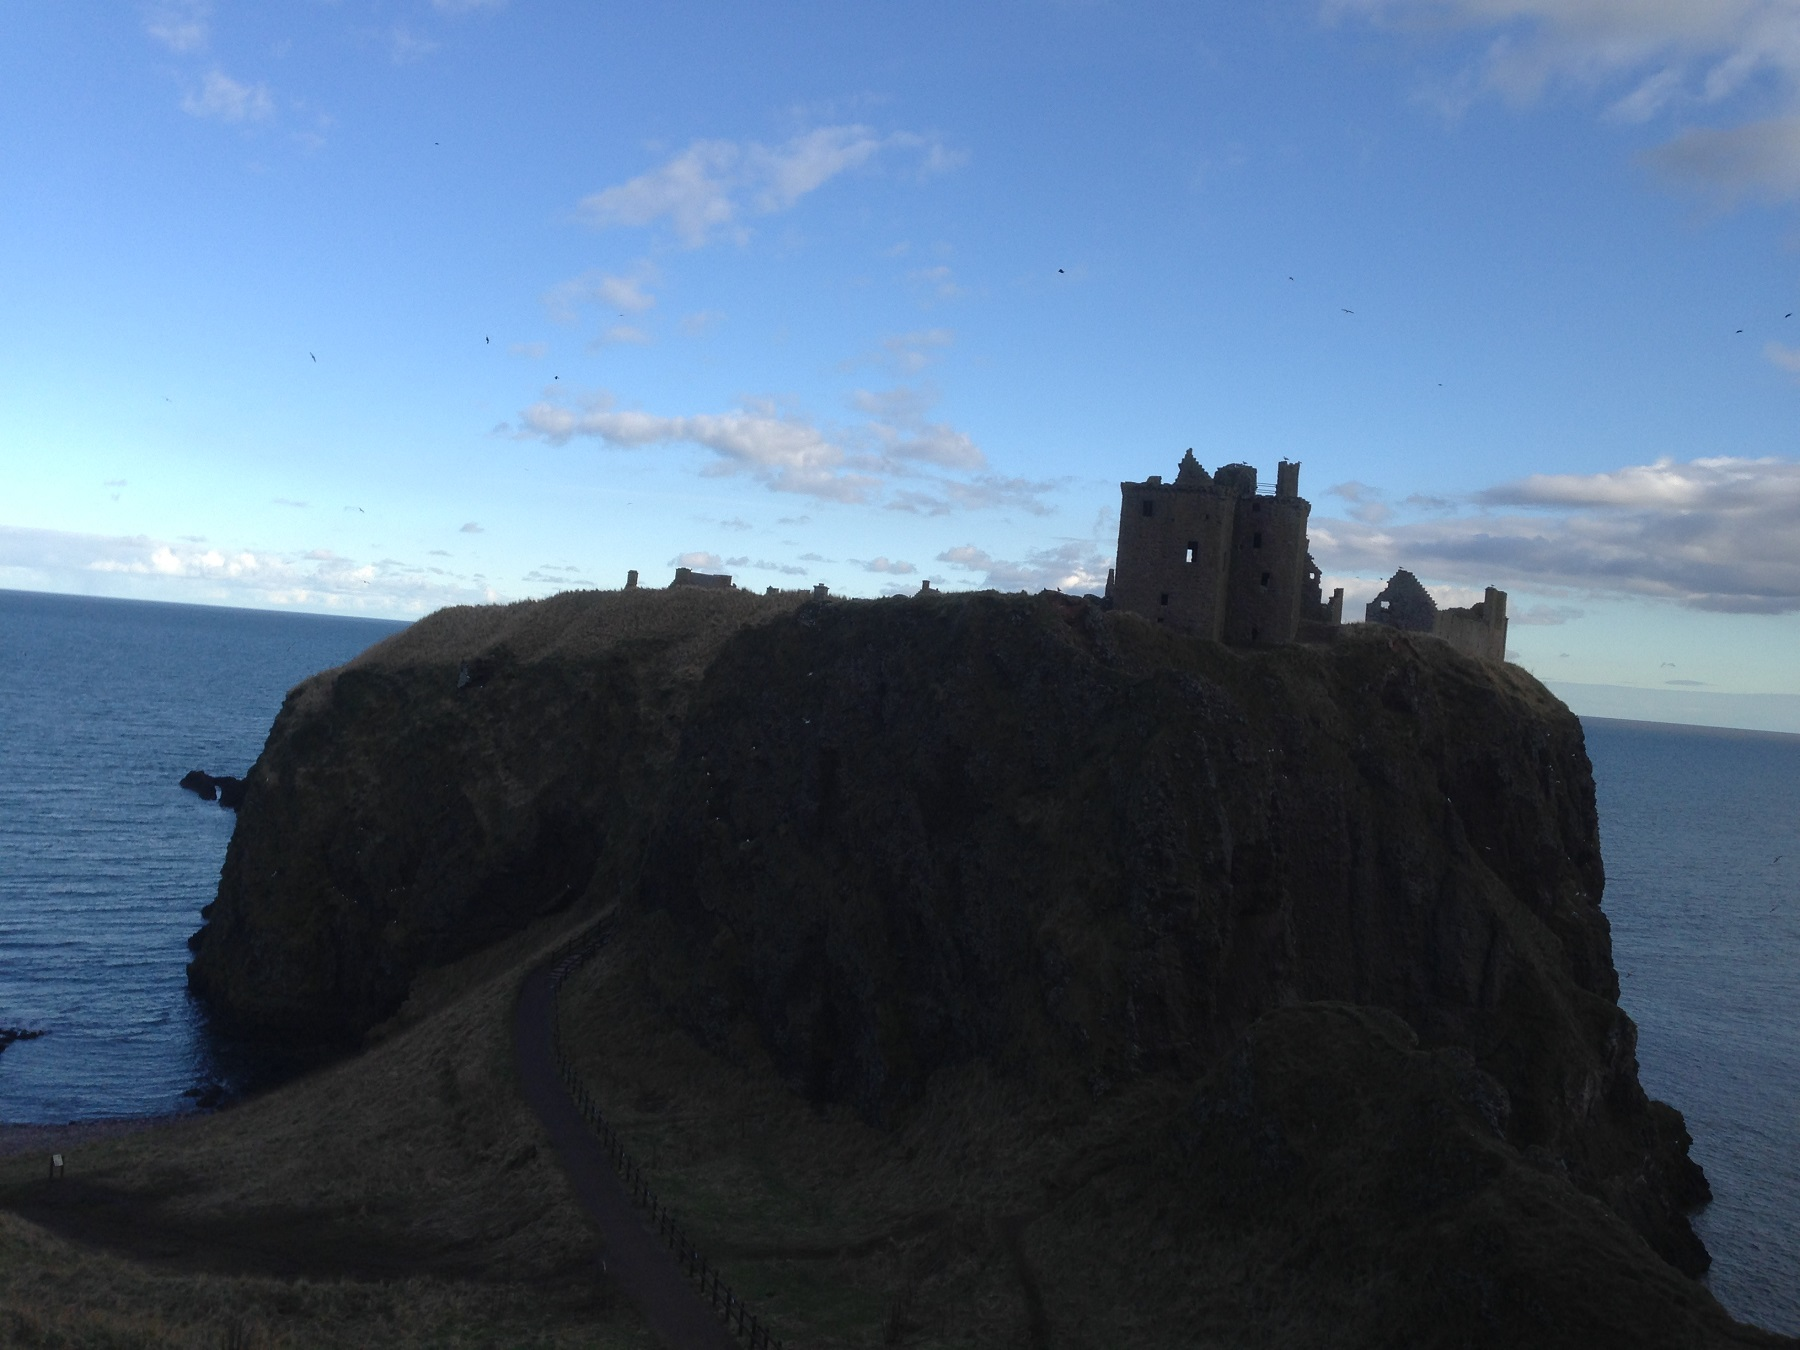 Scottish castle ruin on a cliff